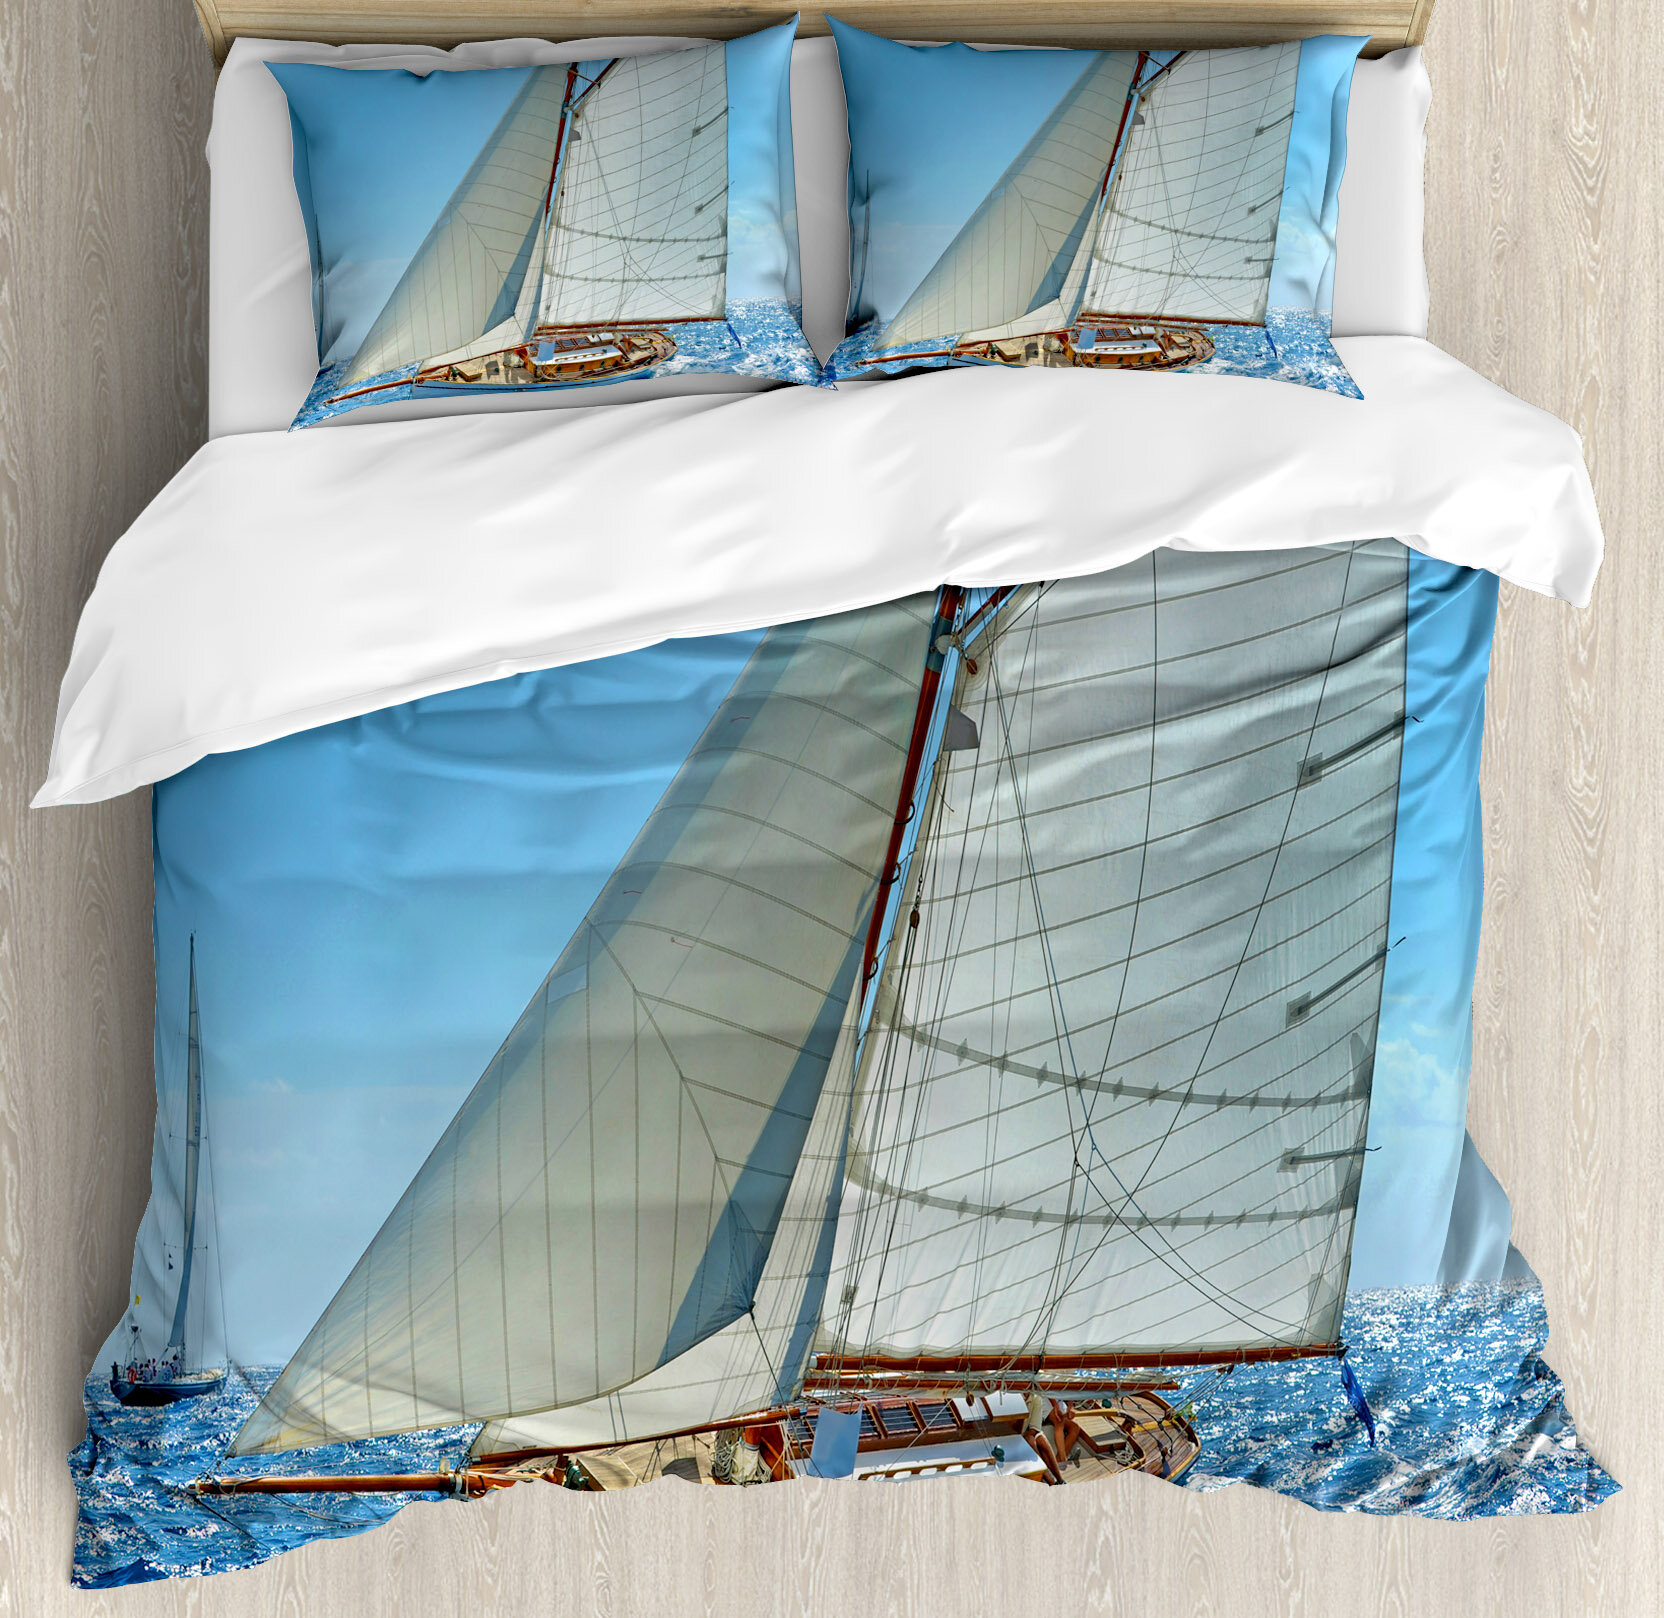 Ambesonne Nautical Deluxe Sailboat On Sea Regatta Race Yacht Windy Weather Competition Luxury Duvet Cover Set Wayfair